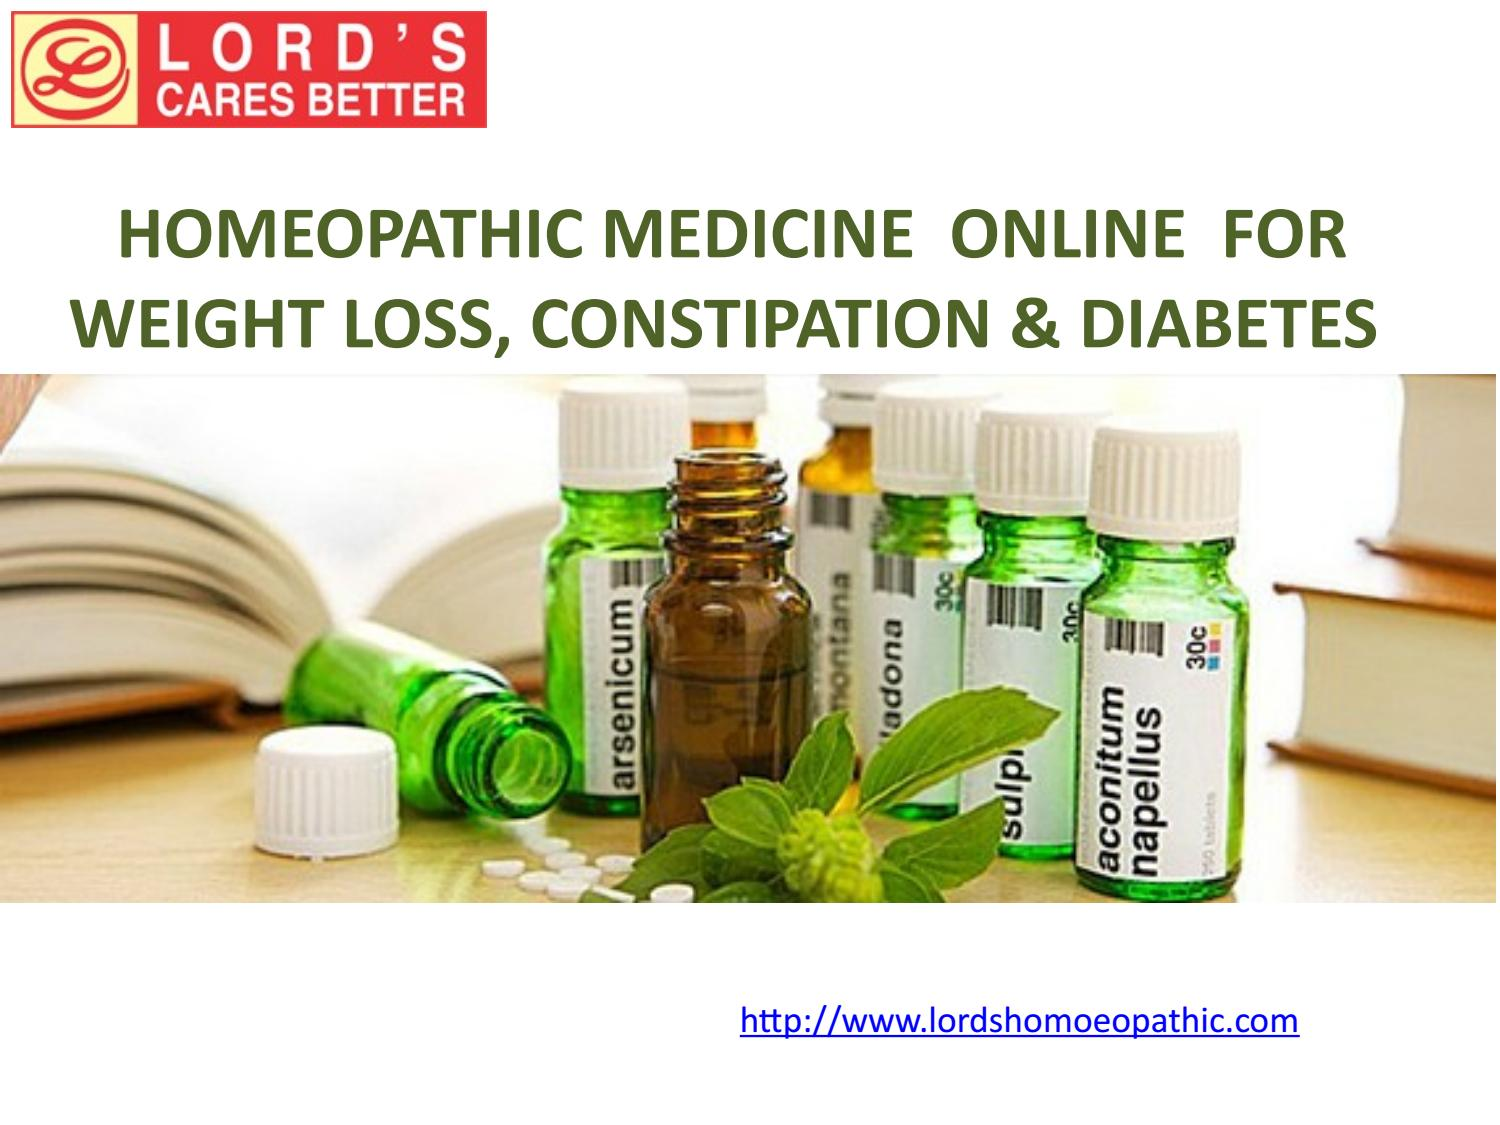 Homeopathic medicine online for weight loss, constipation & diabetes